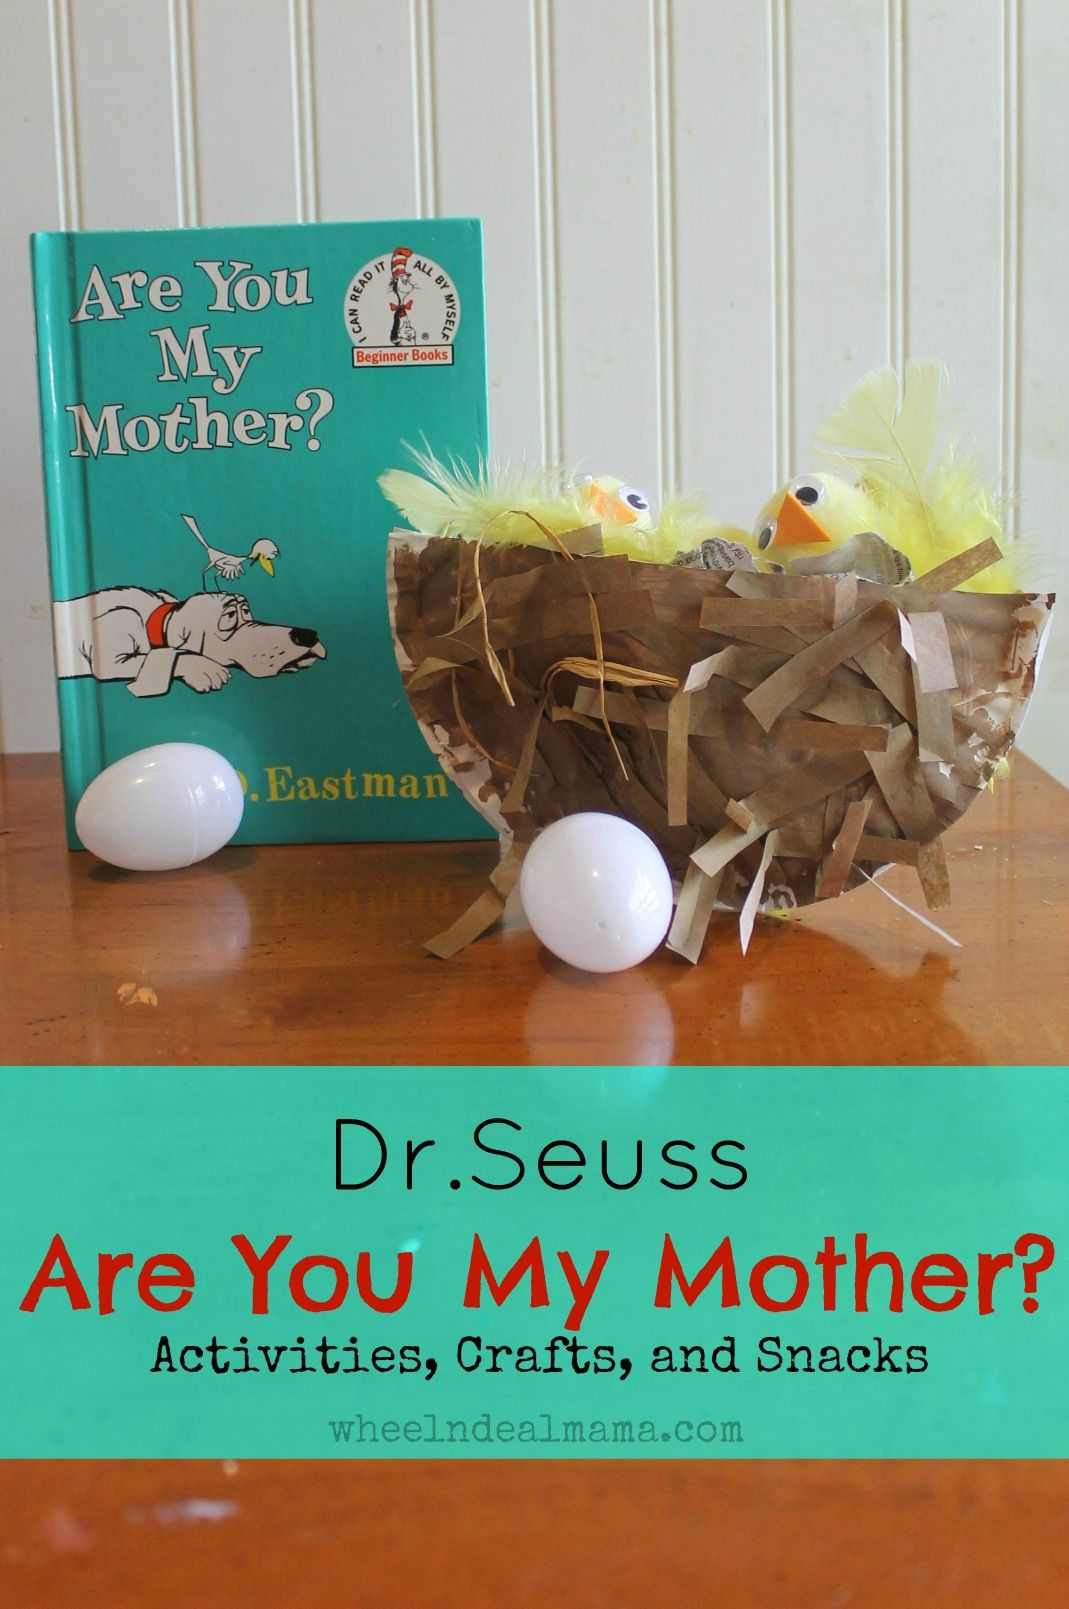 Dr Seuss Are You My Mother Snacks Activities And Crafts Part 1 Snacks